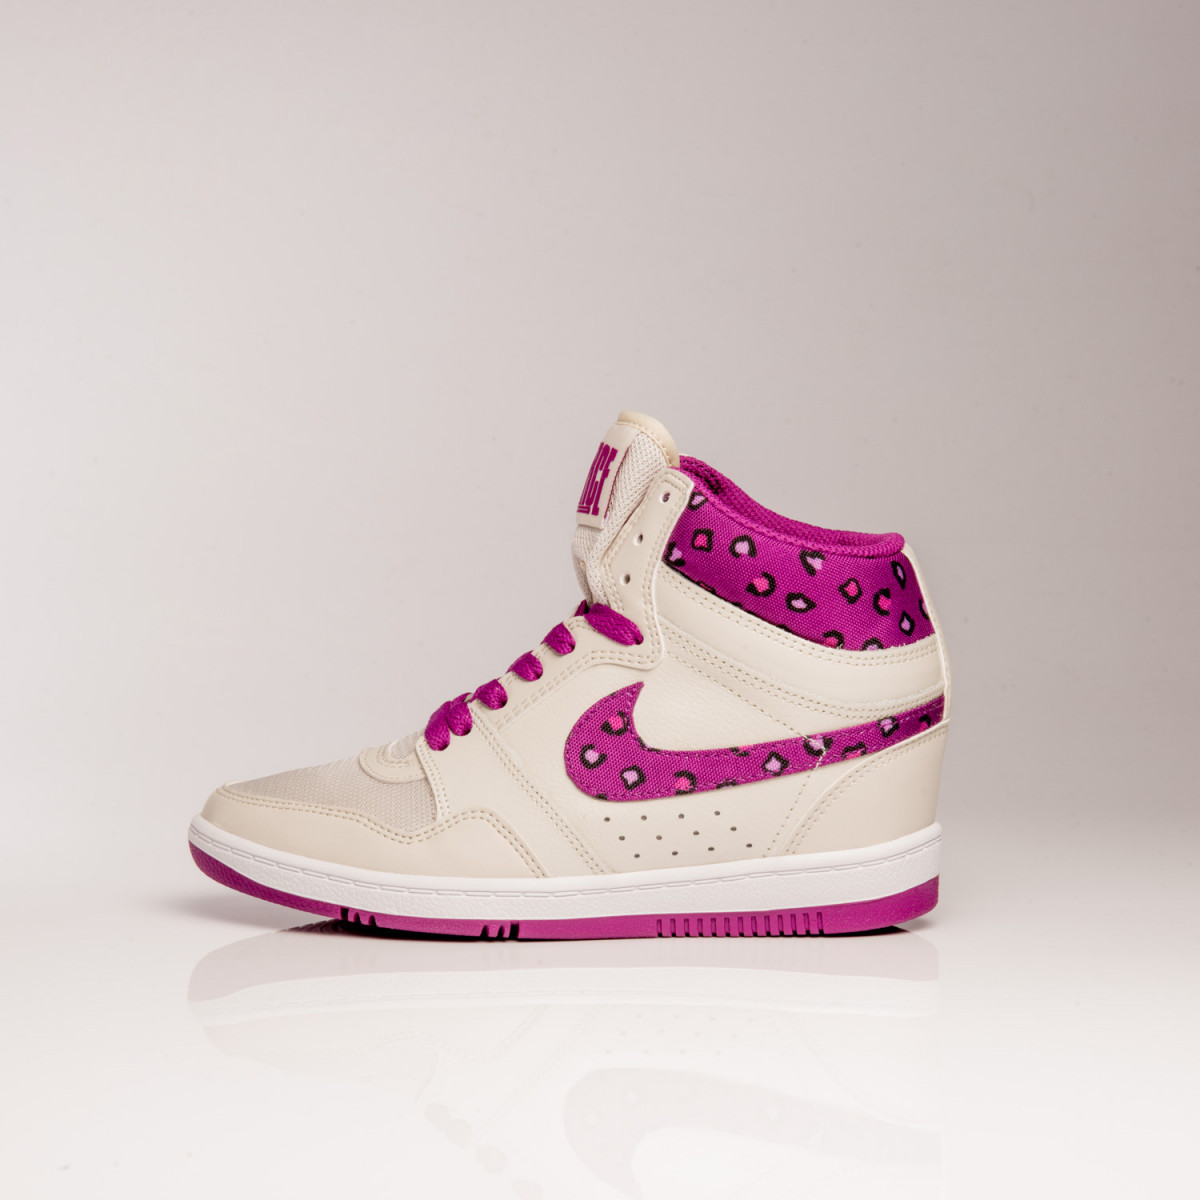 BOTAS NIKE FORCE SKY HIGH PRINT